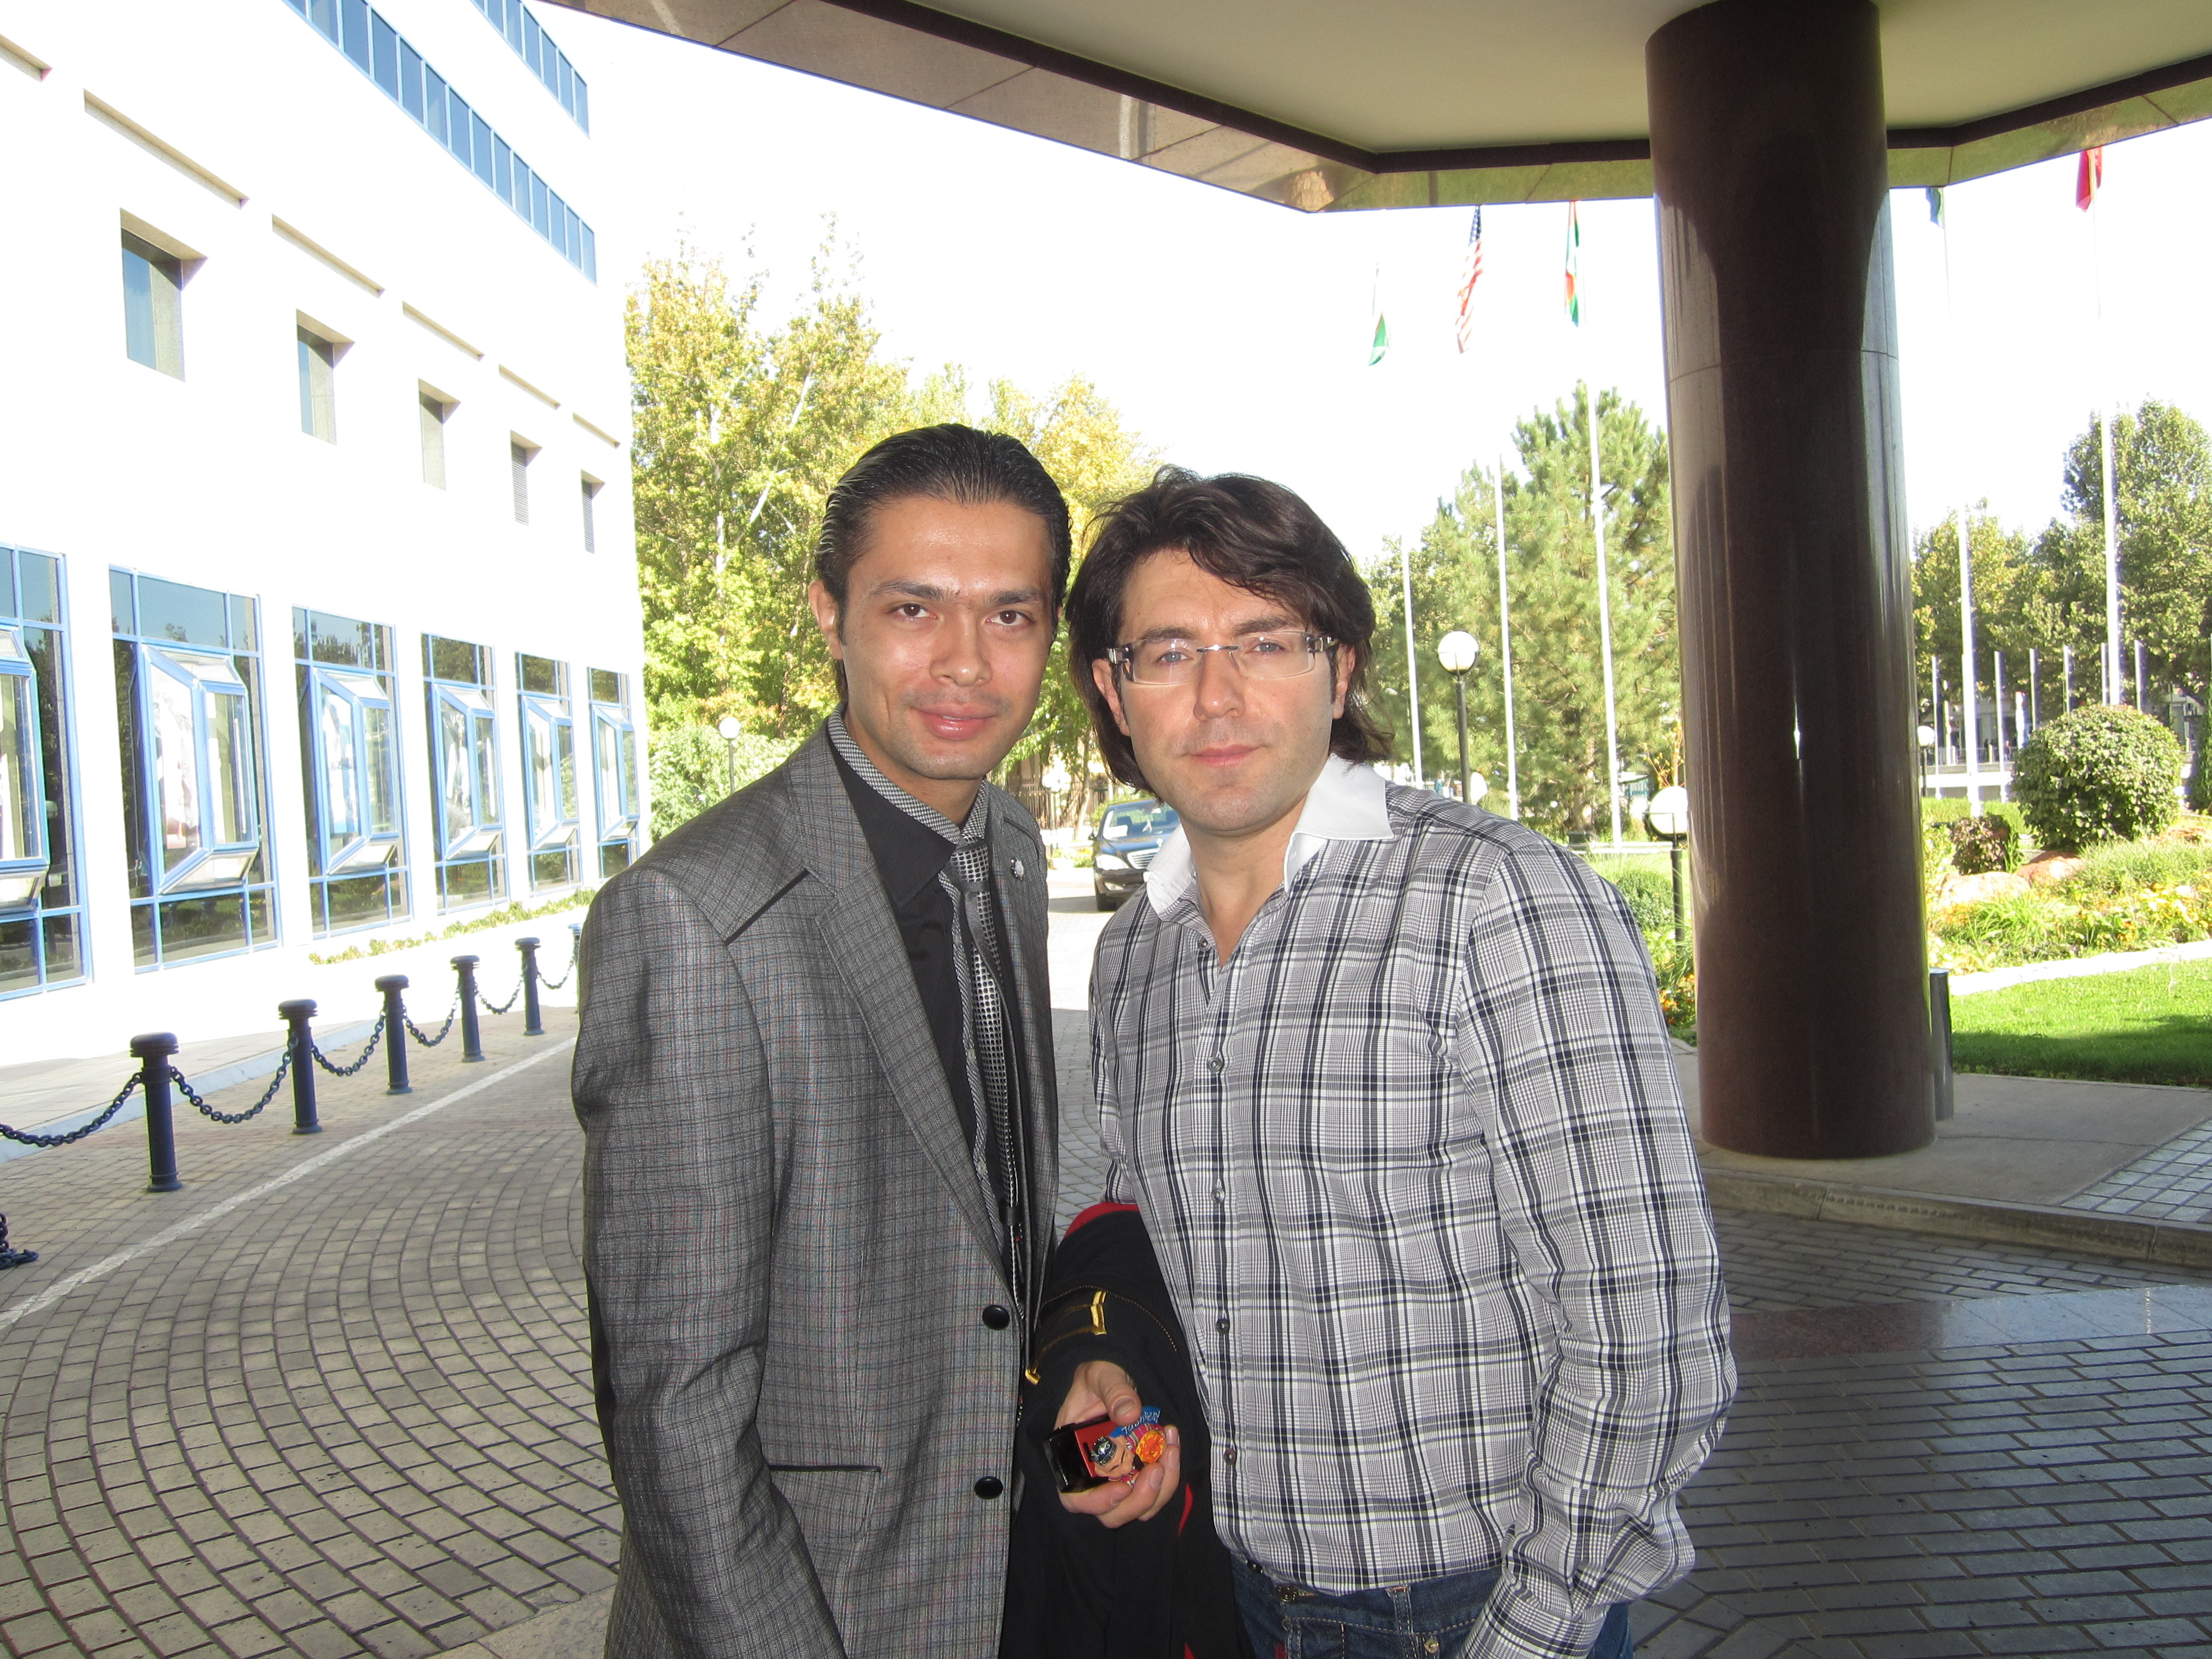 Family and biography of Andrei Malakhov 72